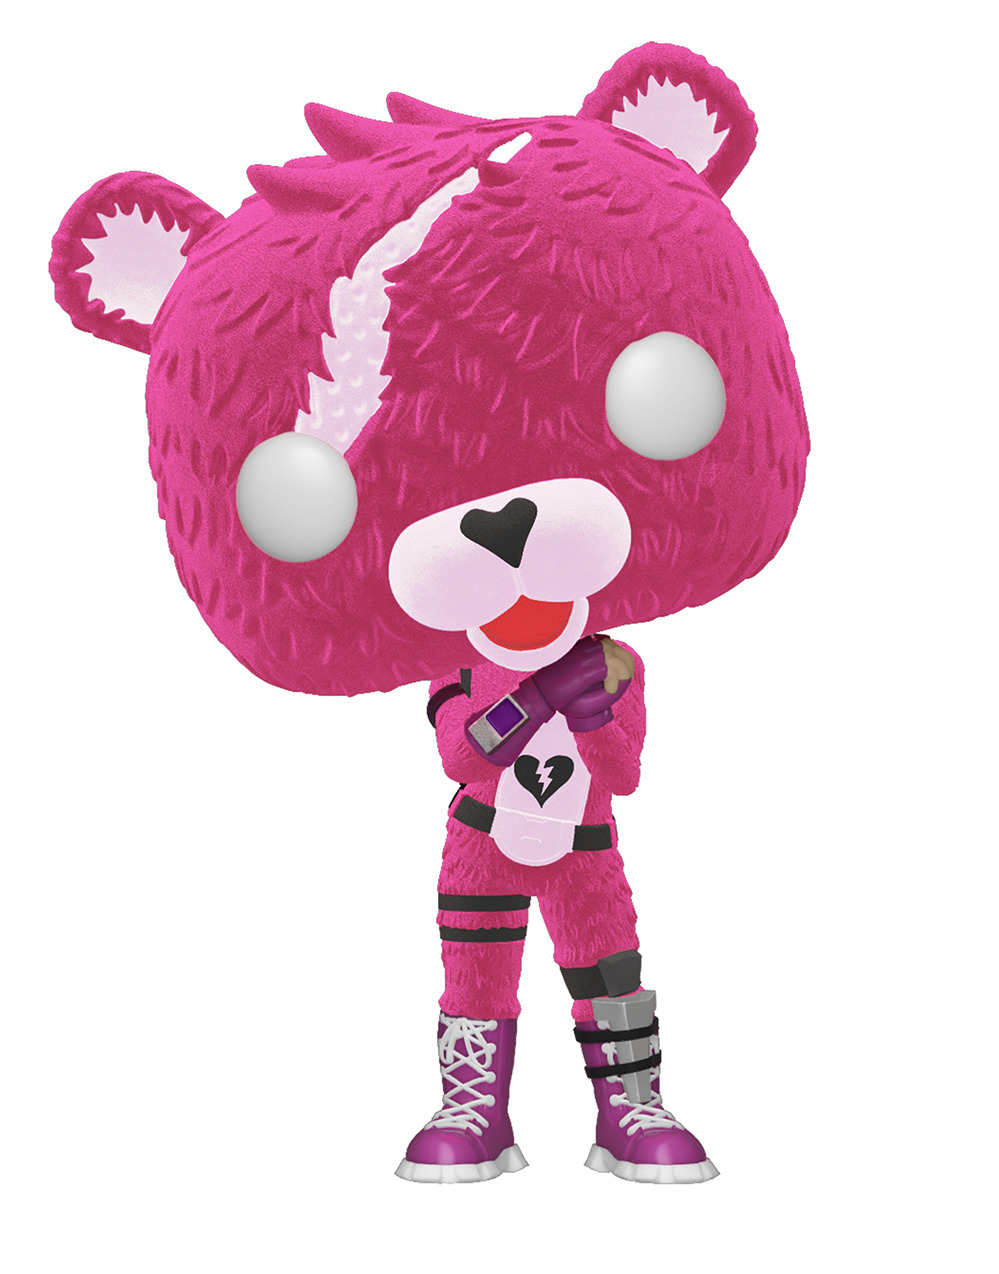 Fortnite - Cuddle Team Leader (Flocked) Pop! Vinyl Figure image